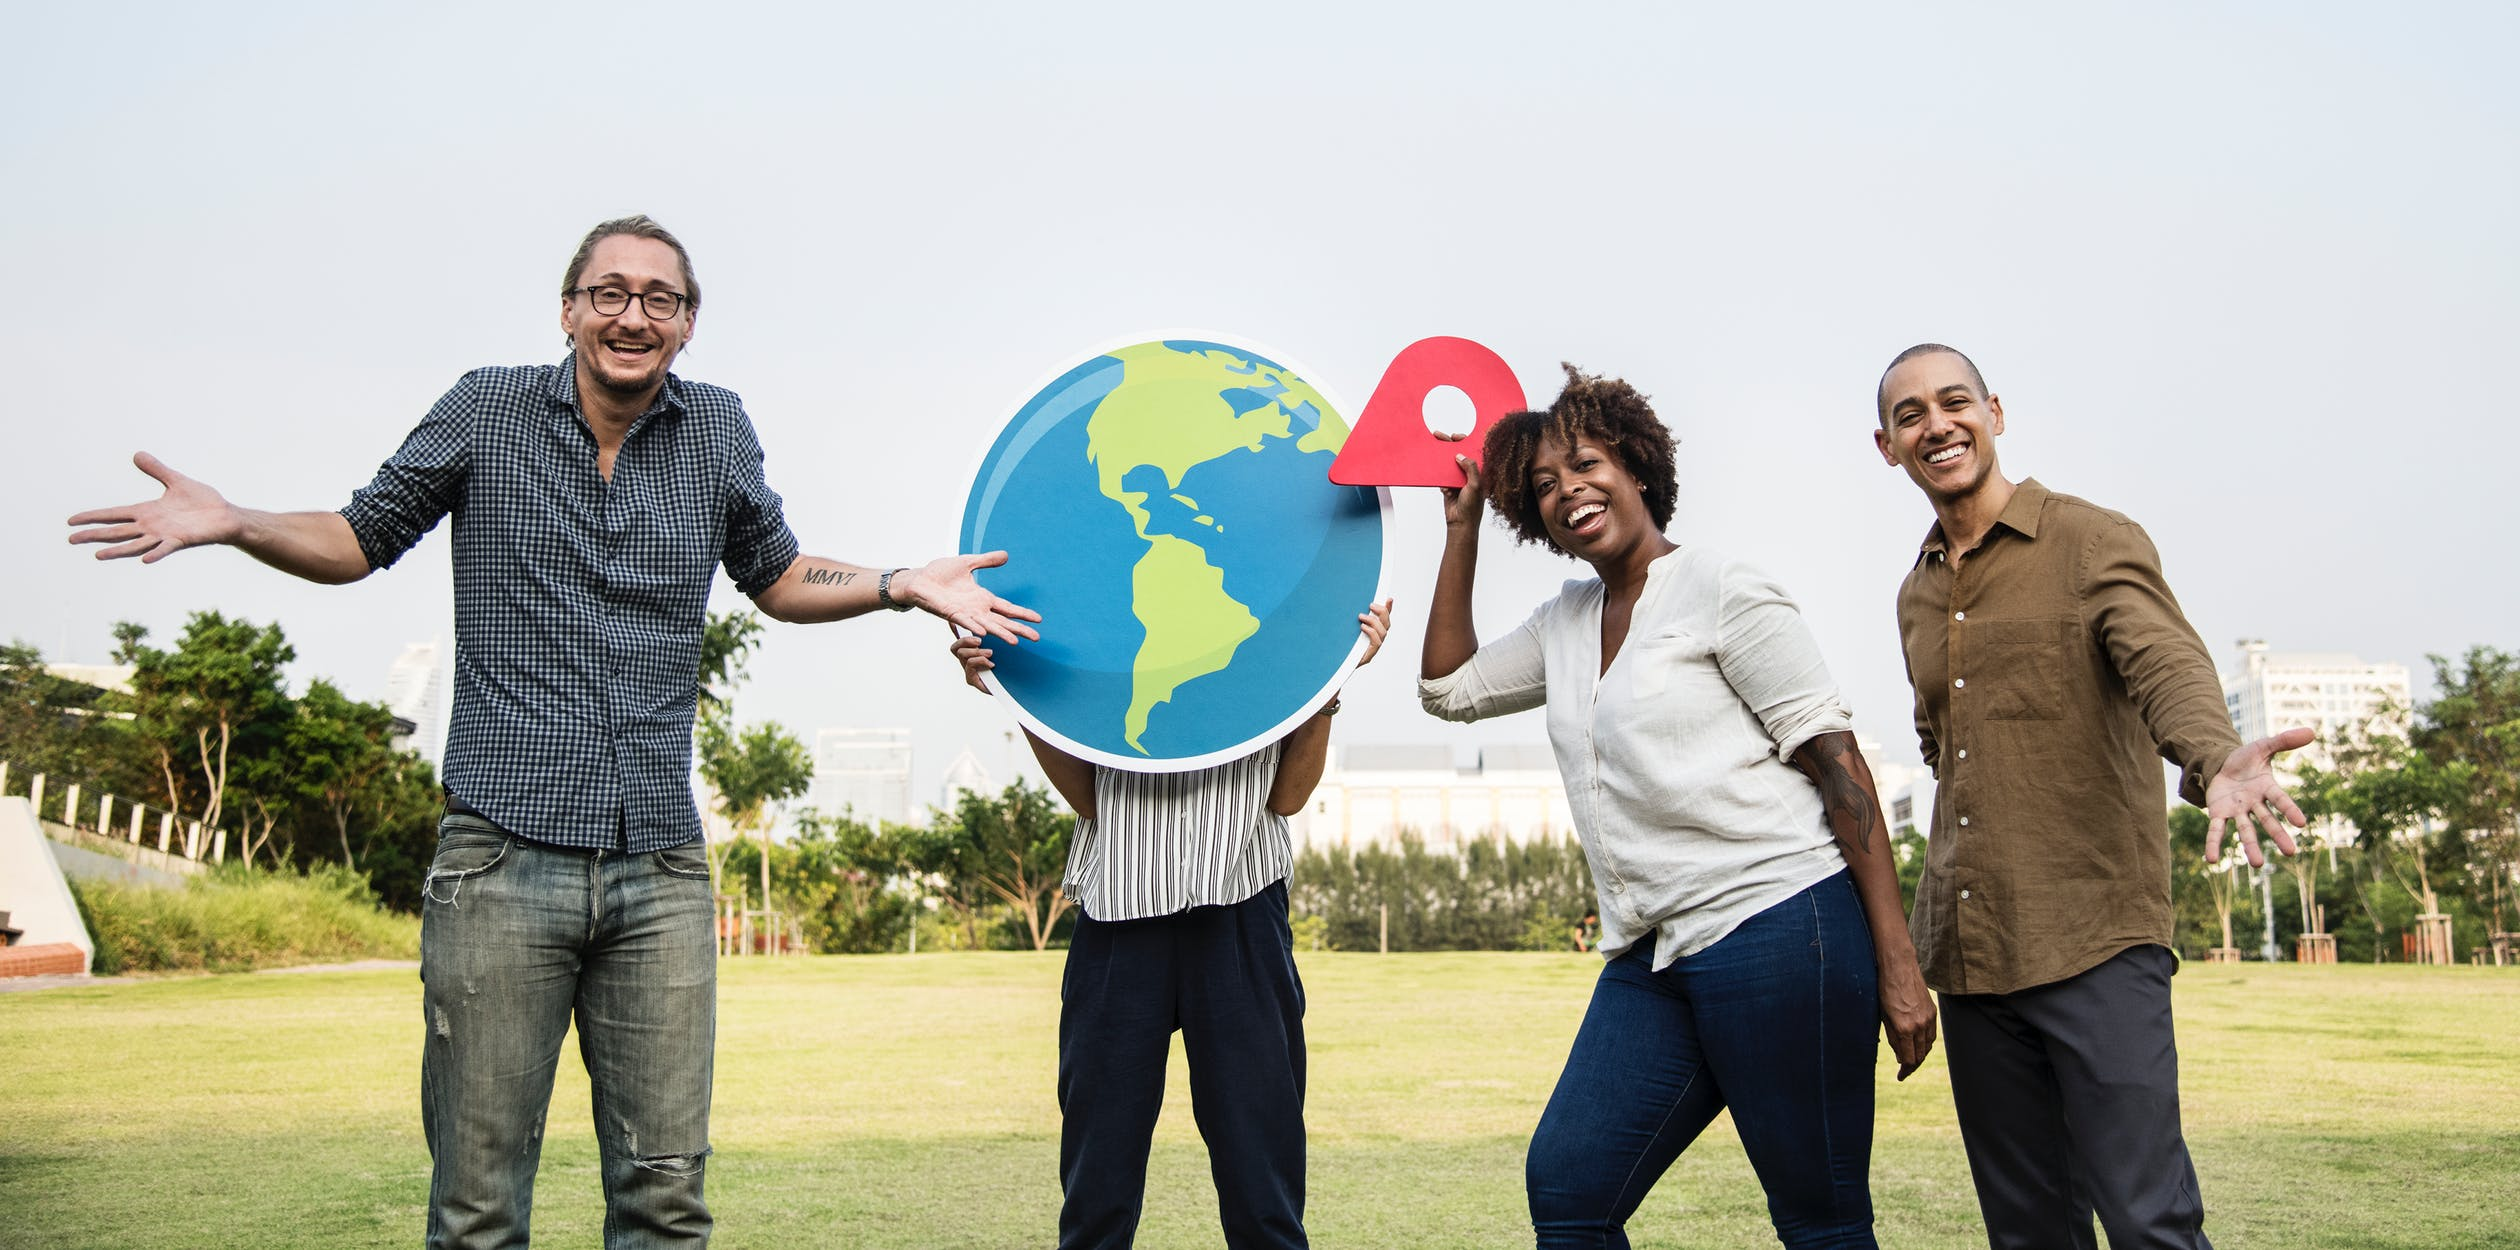 International Language Jobs In The USA For Global People